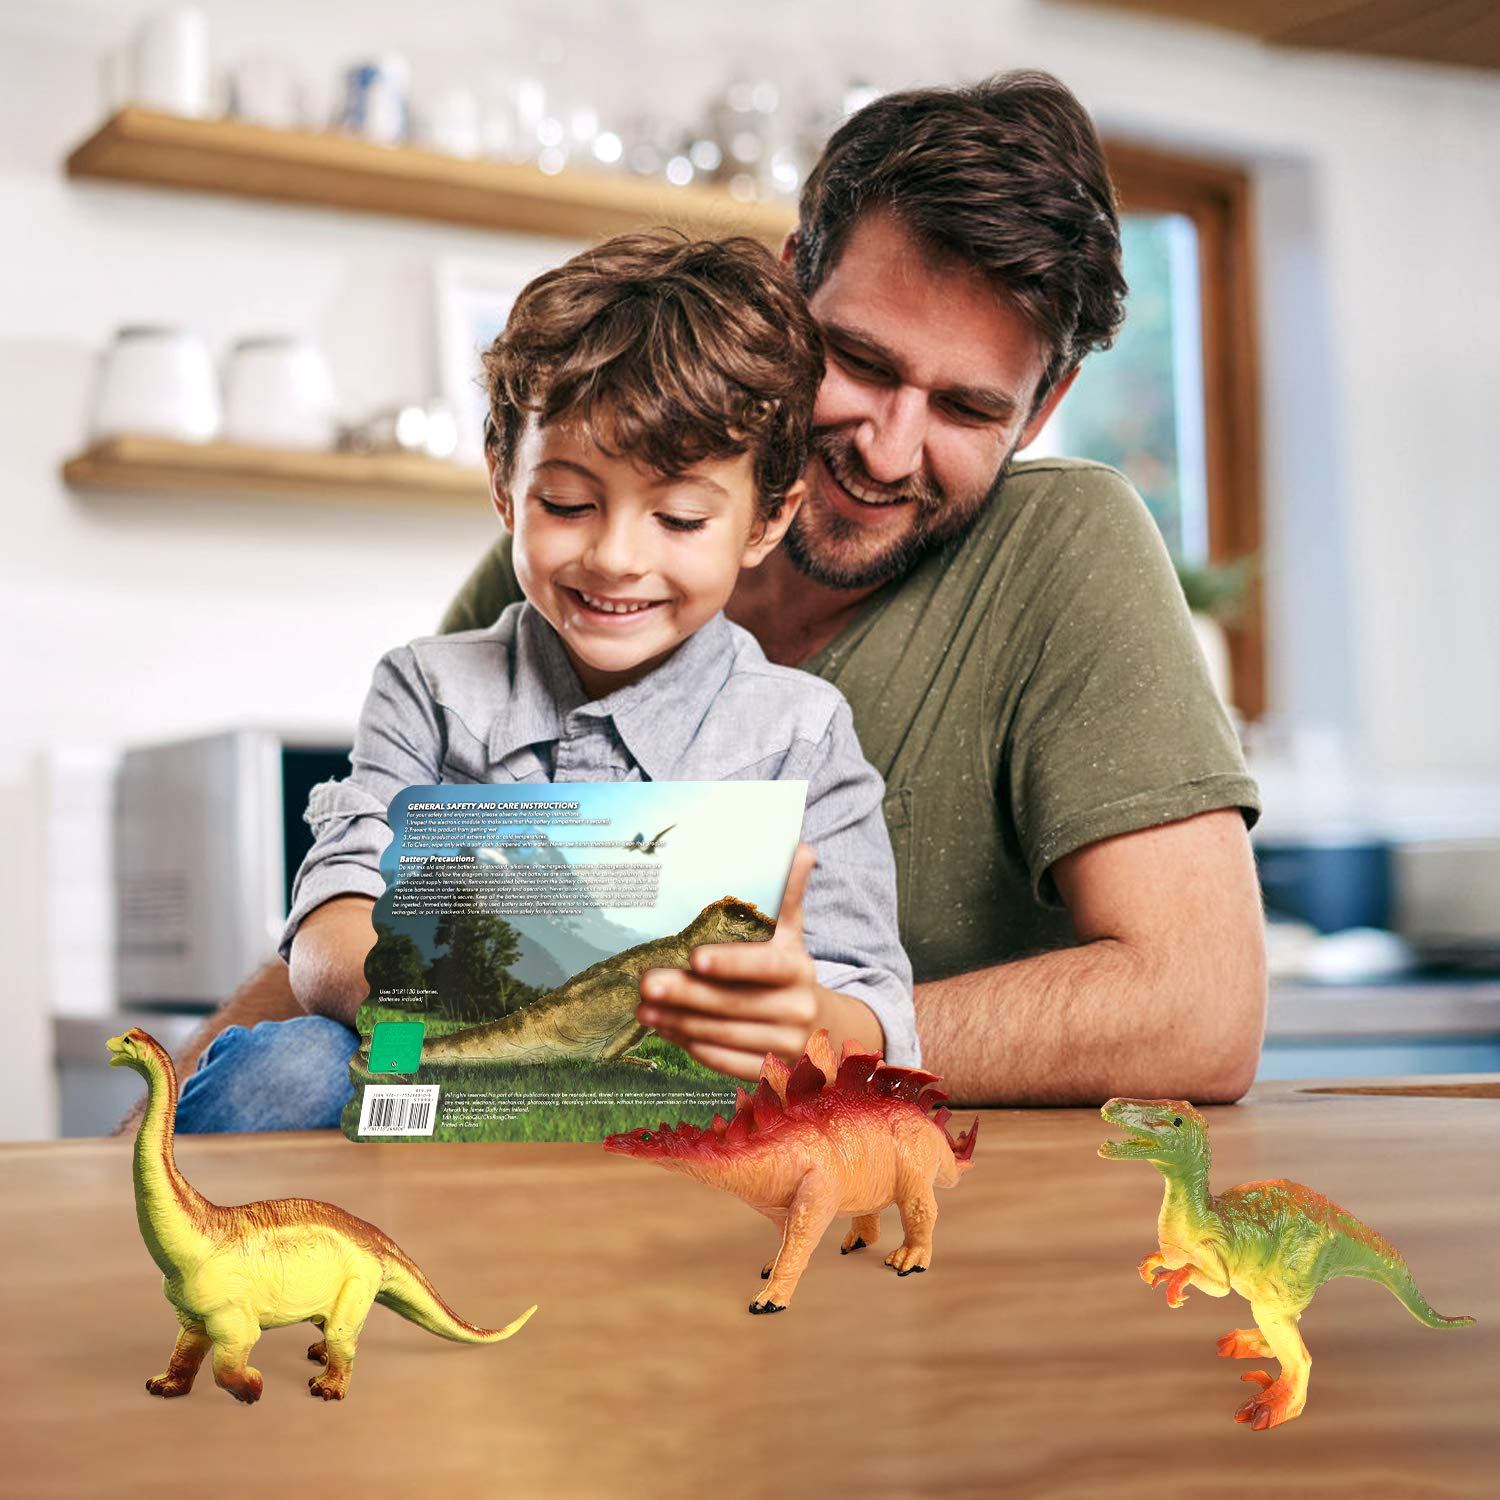 Olefun Dinosaur Toys for 3 Years Old & Up - Dinosaur Sound Book & 12 Realistic Looking Dinosaurs Figures Including T-Rex, Triceratops, Utahraptor, Perfect Gifts for Kids, Boys and Girls